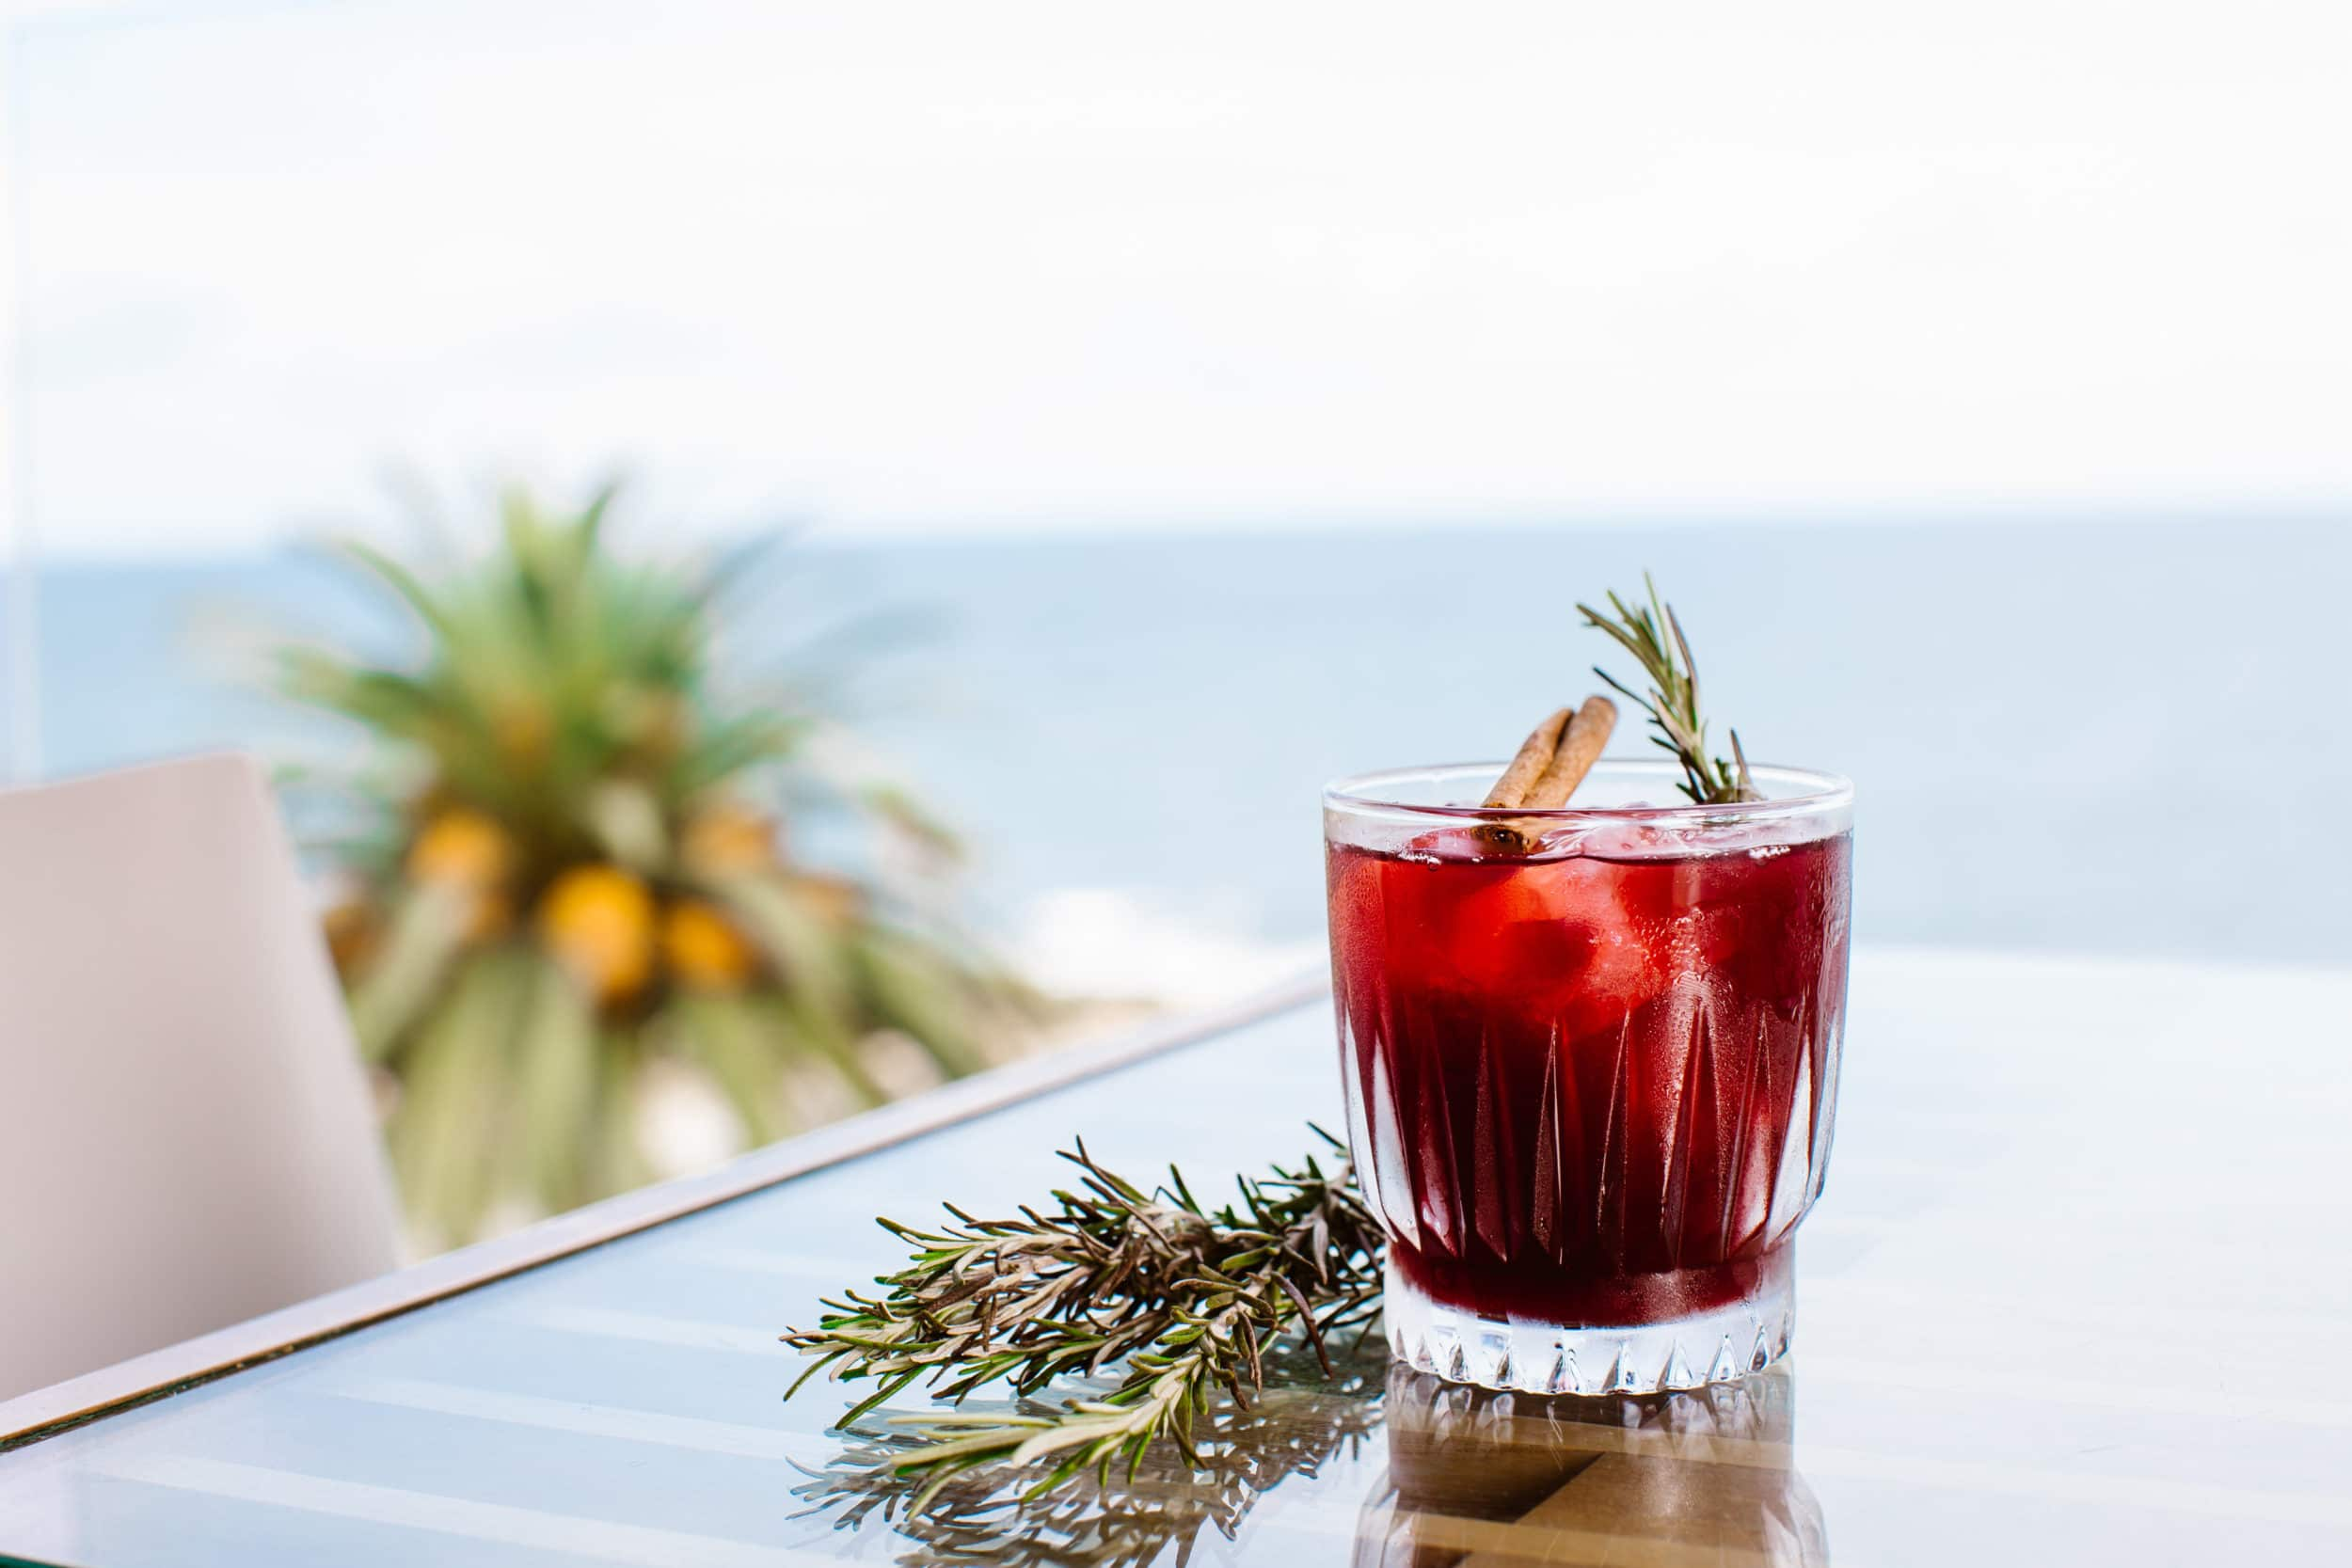 George's Level2 has one of the best happy hours in La Jolla